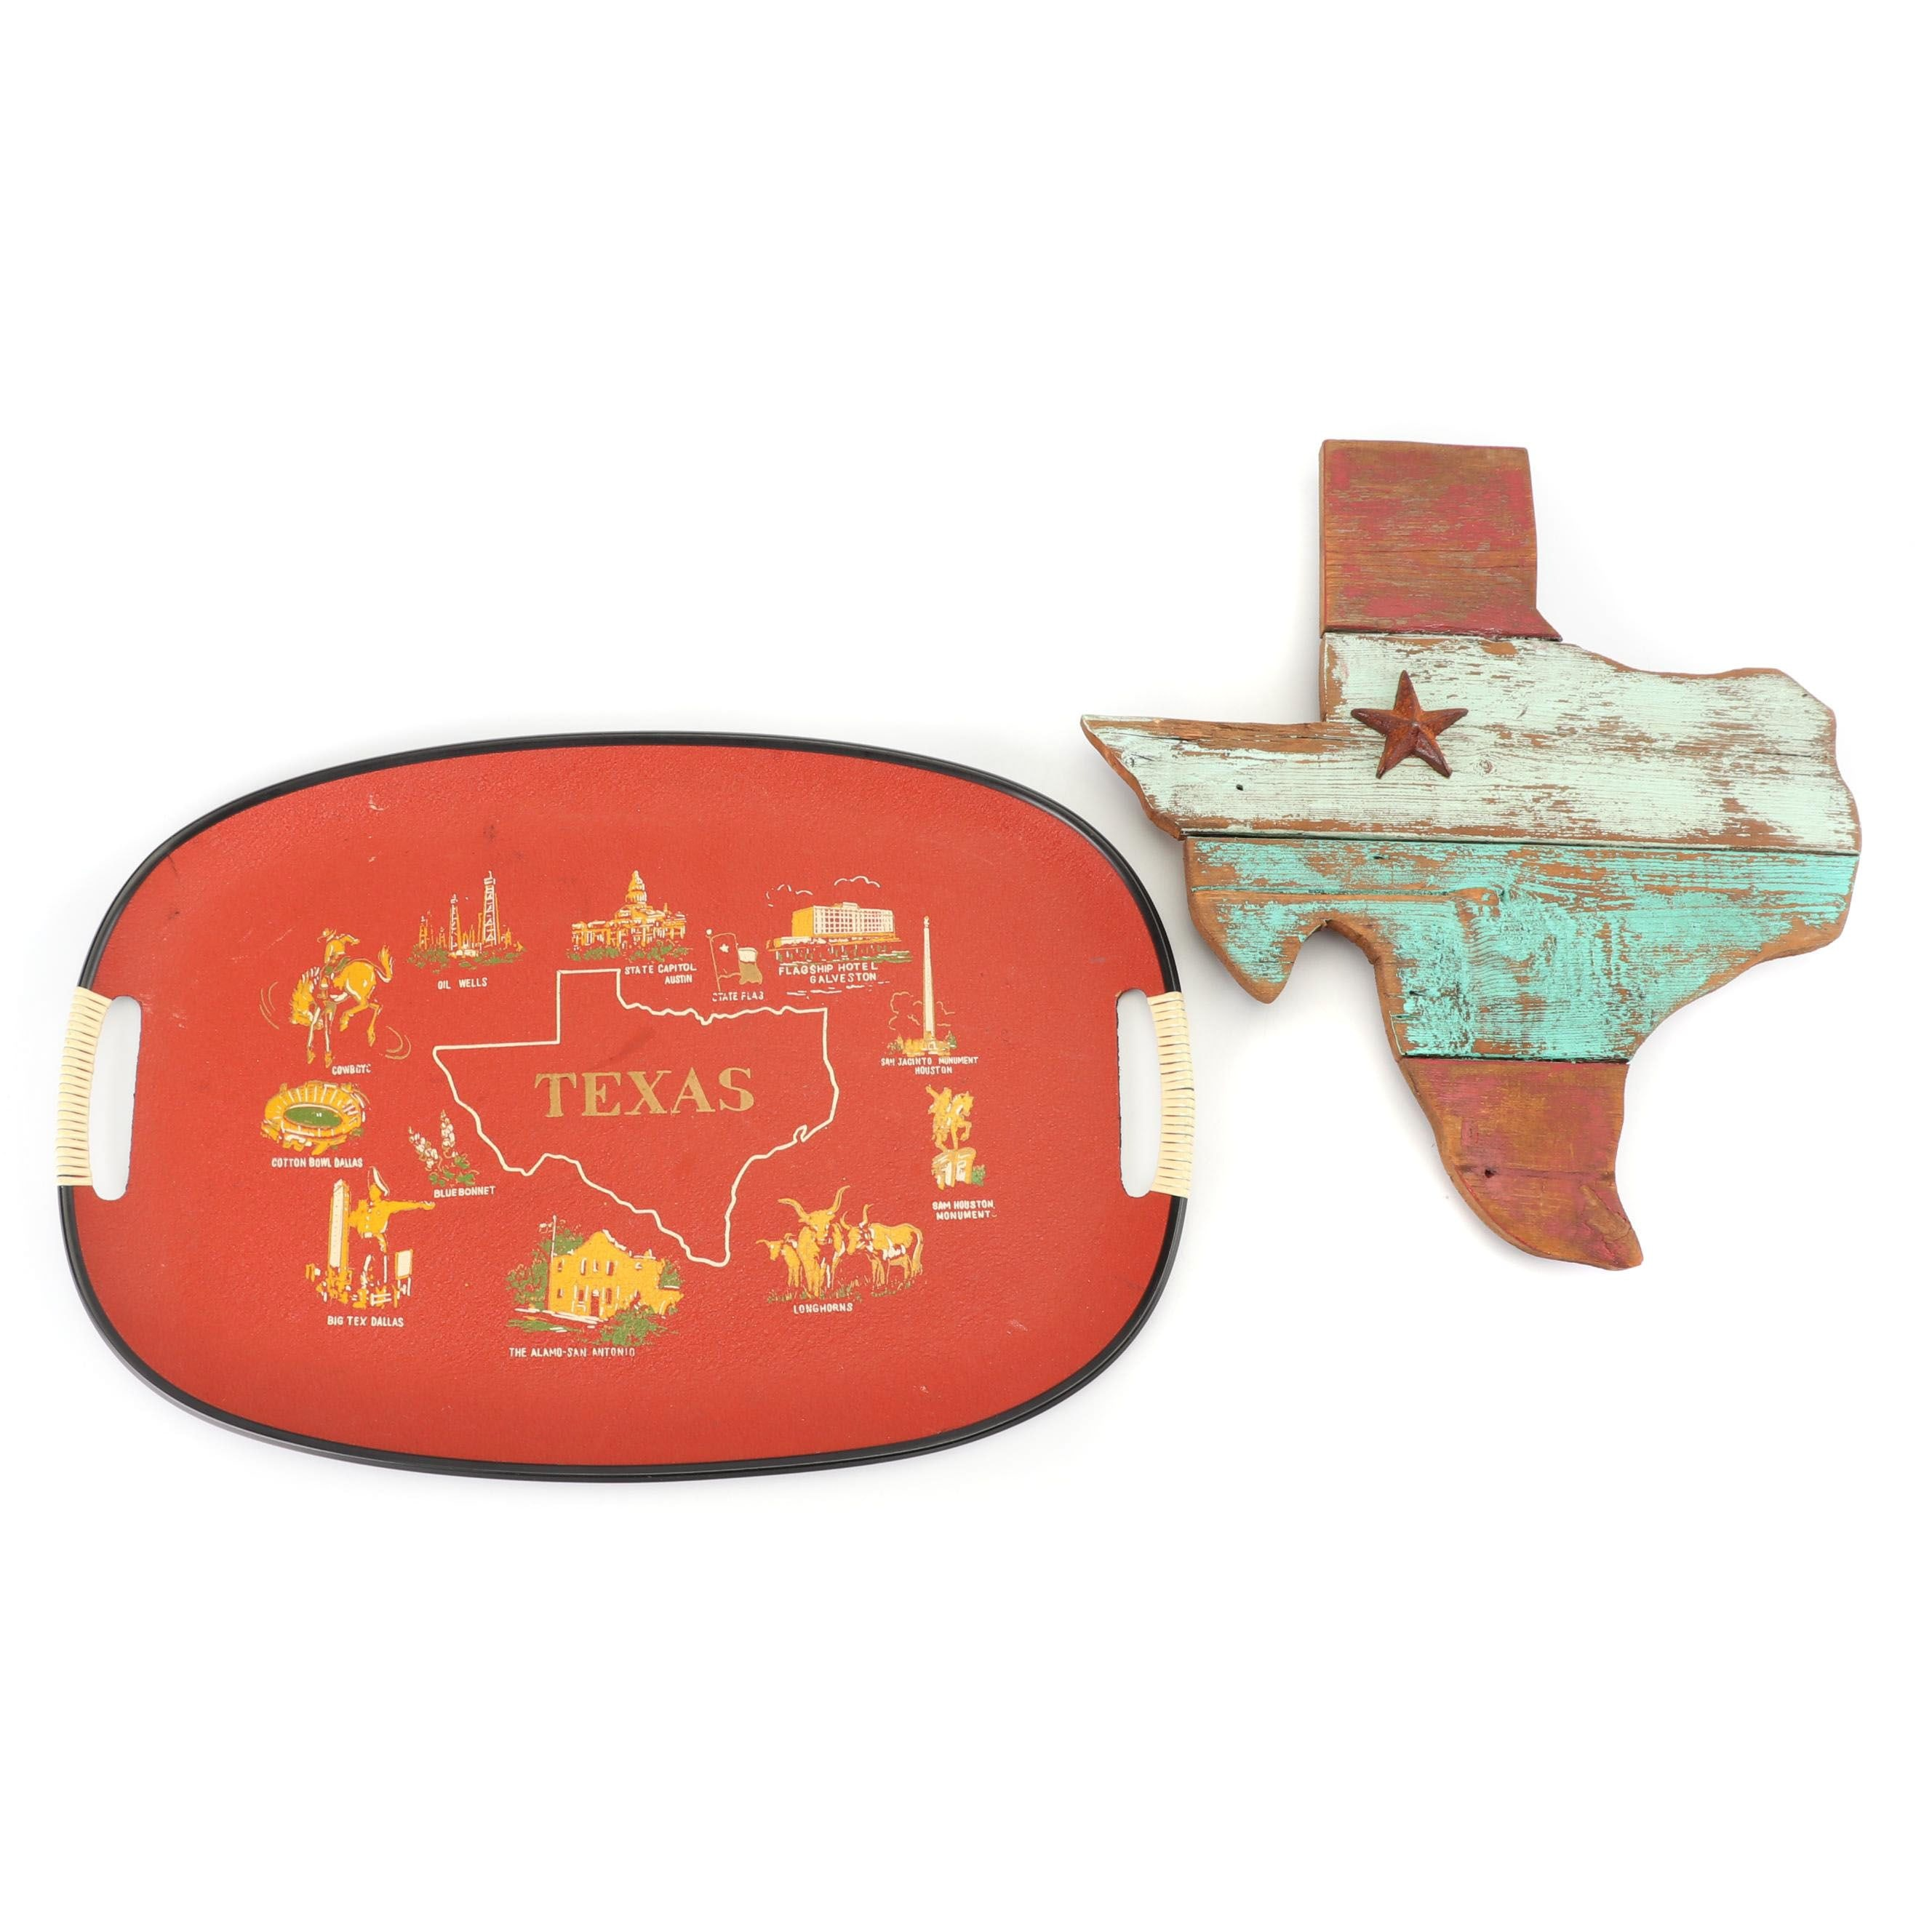 Texas Themed Handled Tray and Wall Hanging